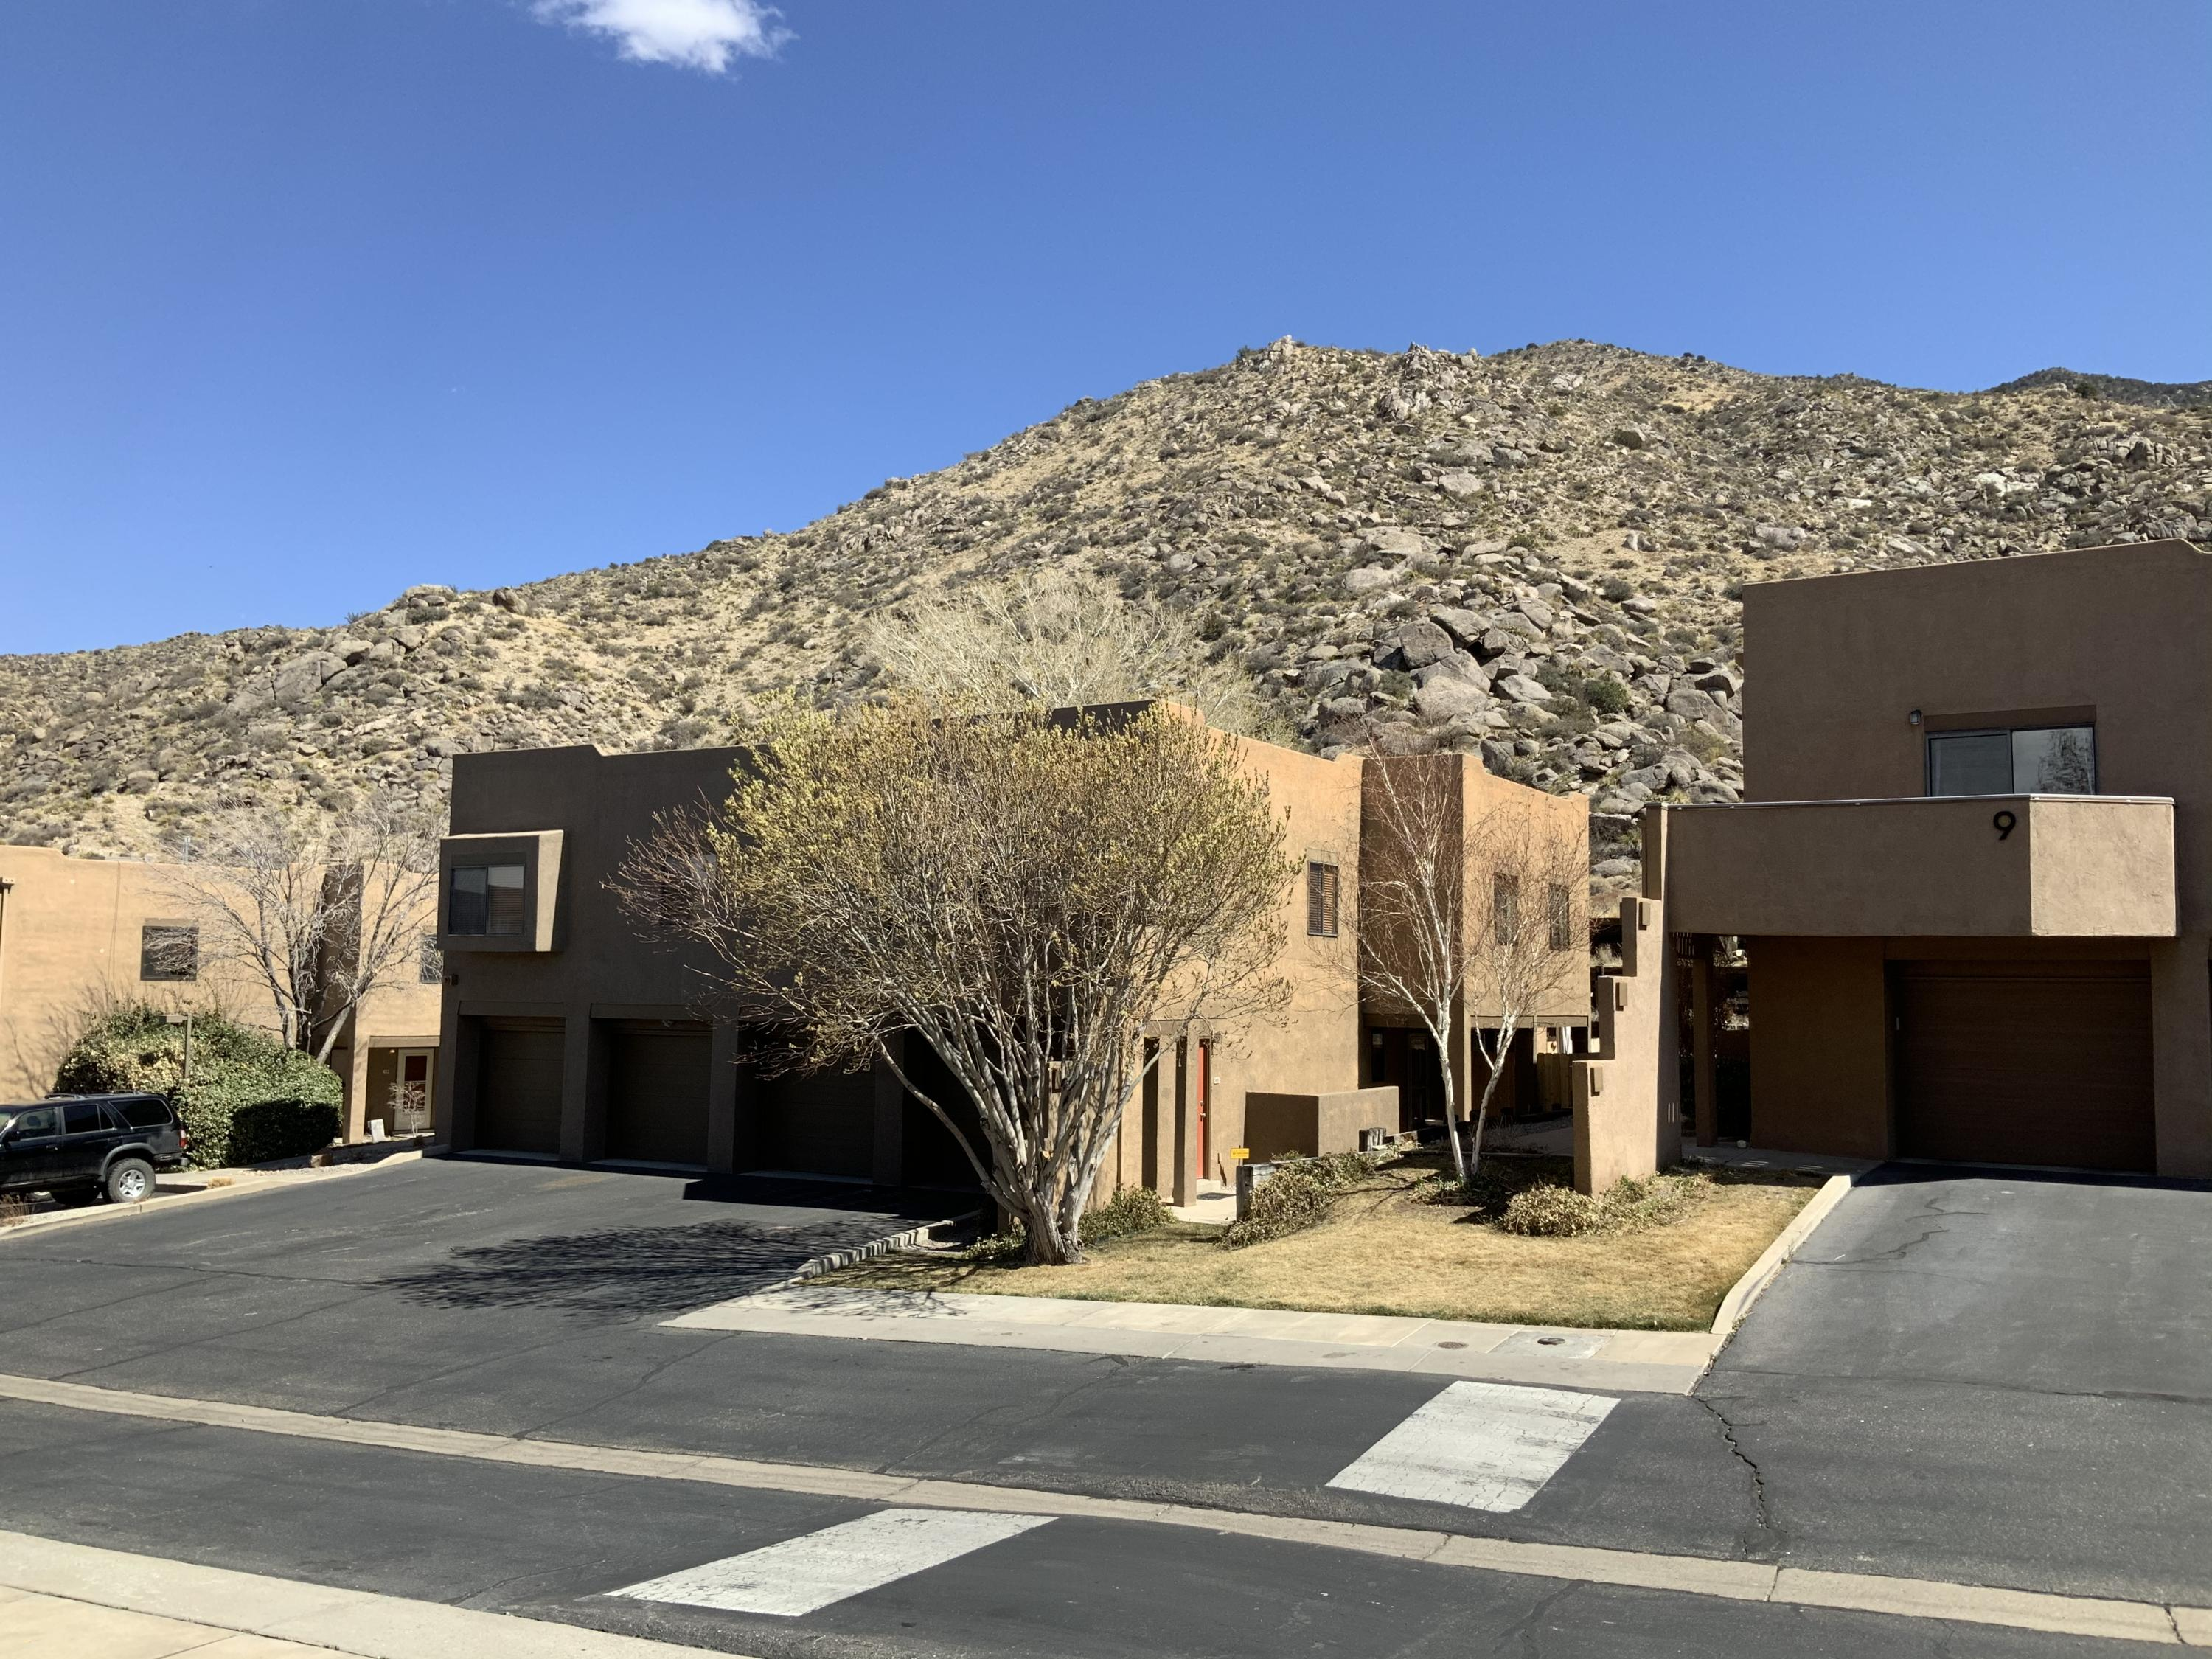 Updated Foothills home and End Unit which is SURROUNDED BY PARKS AND OPEN SPACE. Private backyard and Portal viewing the Sandia Foothils  & close to Casa Grande Linear Park Trail.... and connects to three additional parks, as well as, the Foot Hills Open Space. New upgrades including paint, GRANITE countertops, and more. All appliances including full size W/D stay. Refrigerated central air. Attached garage has storage and work area. HOA covers landscaping, building exterior maintenance, some insurance, and some utilities.This is a Really Nice Home!